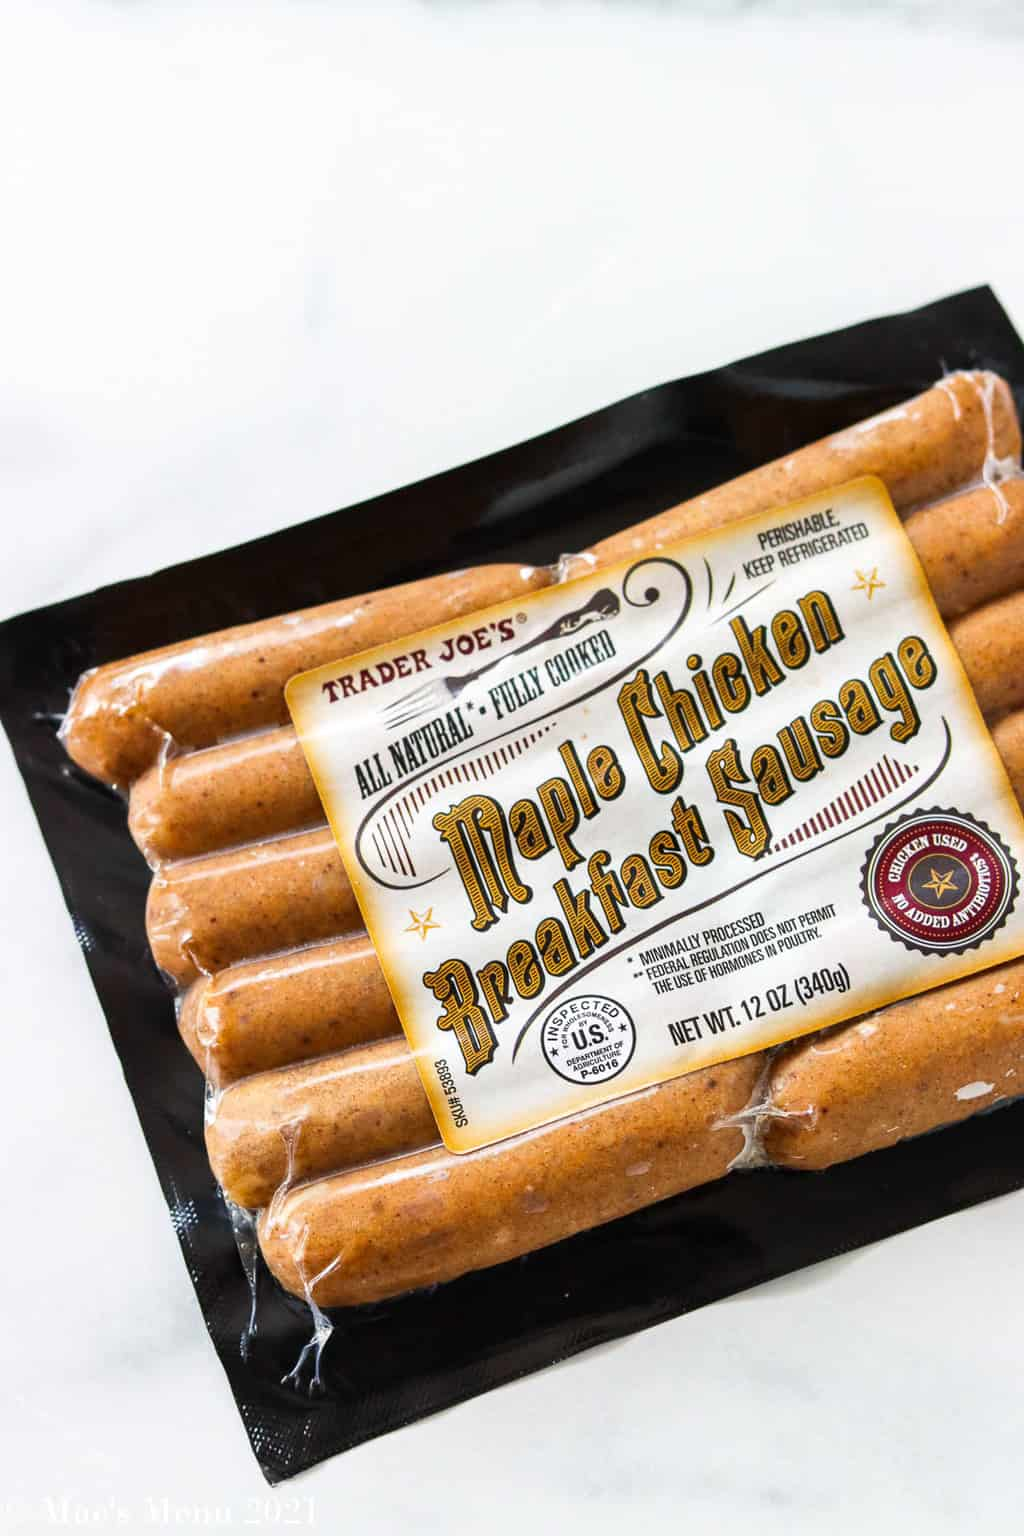 An overhead shot of a package of maple chicken breakfast sausage